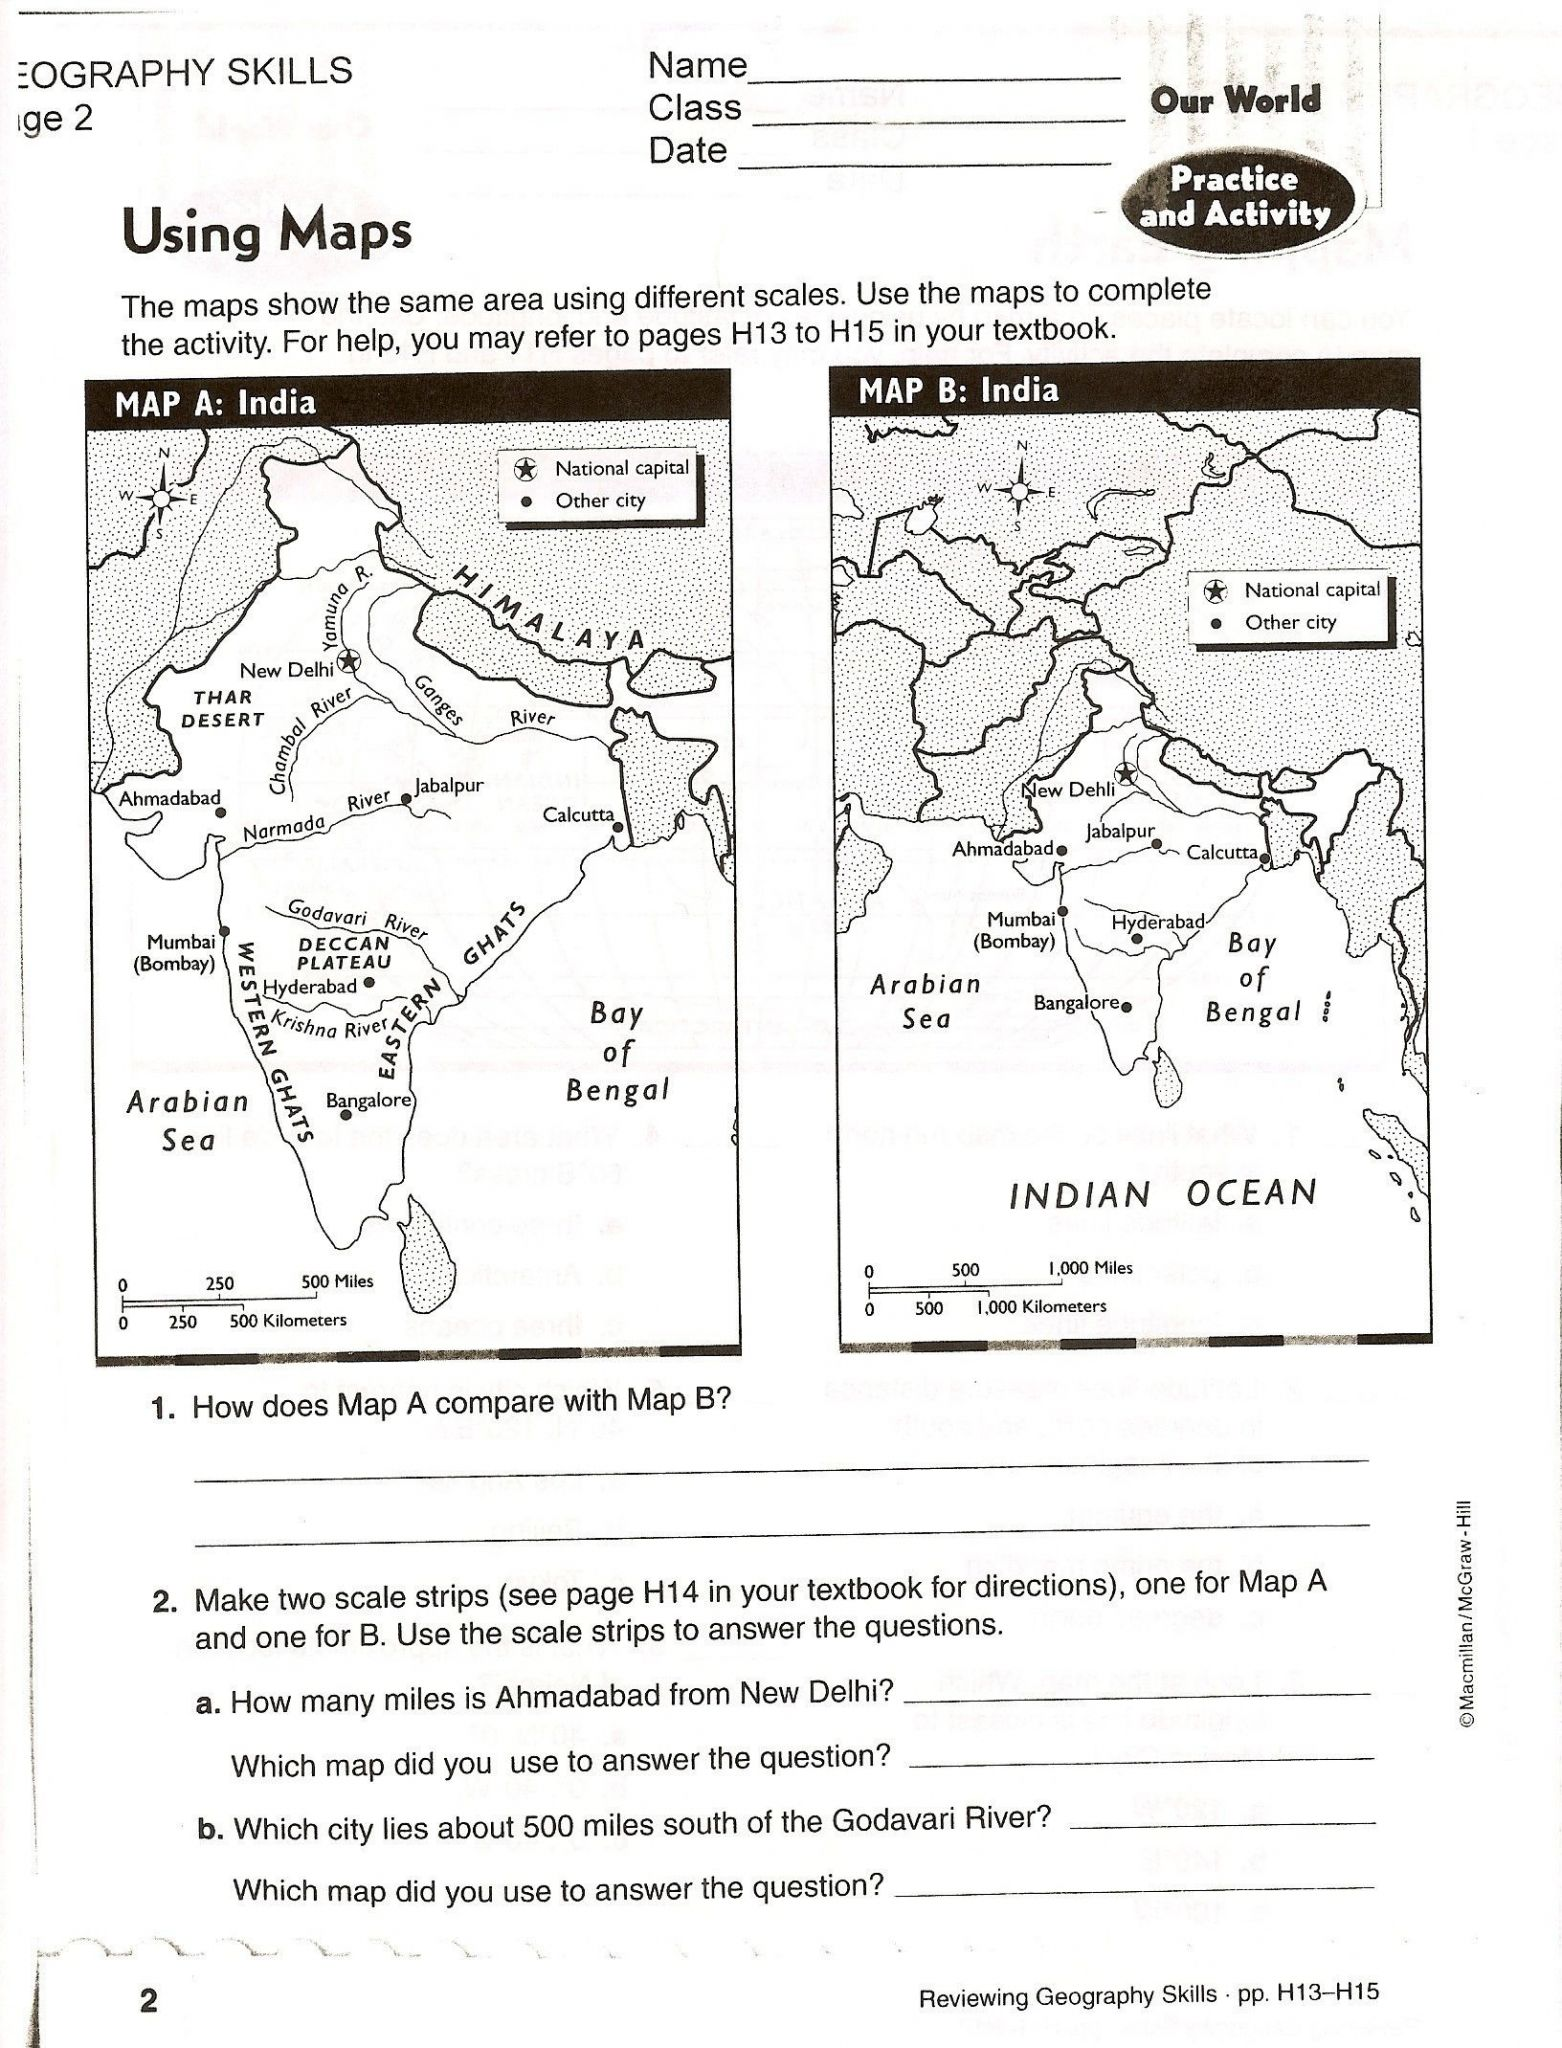 Topographic Map Worksheet Answers